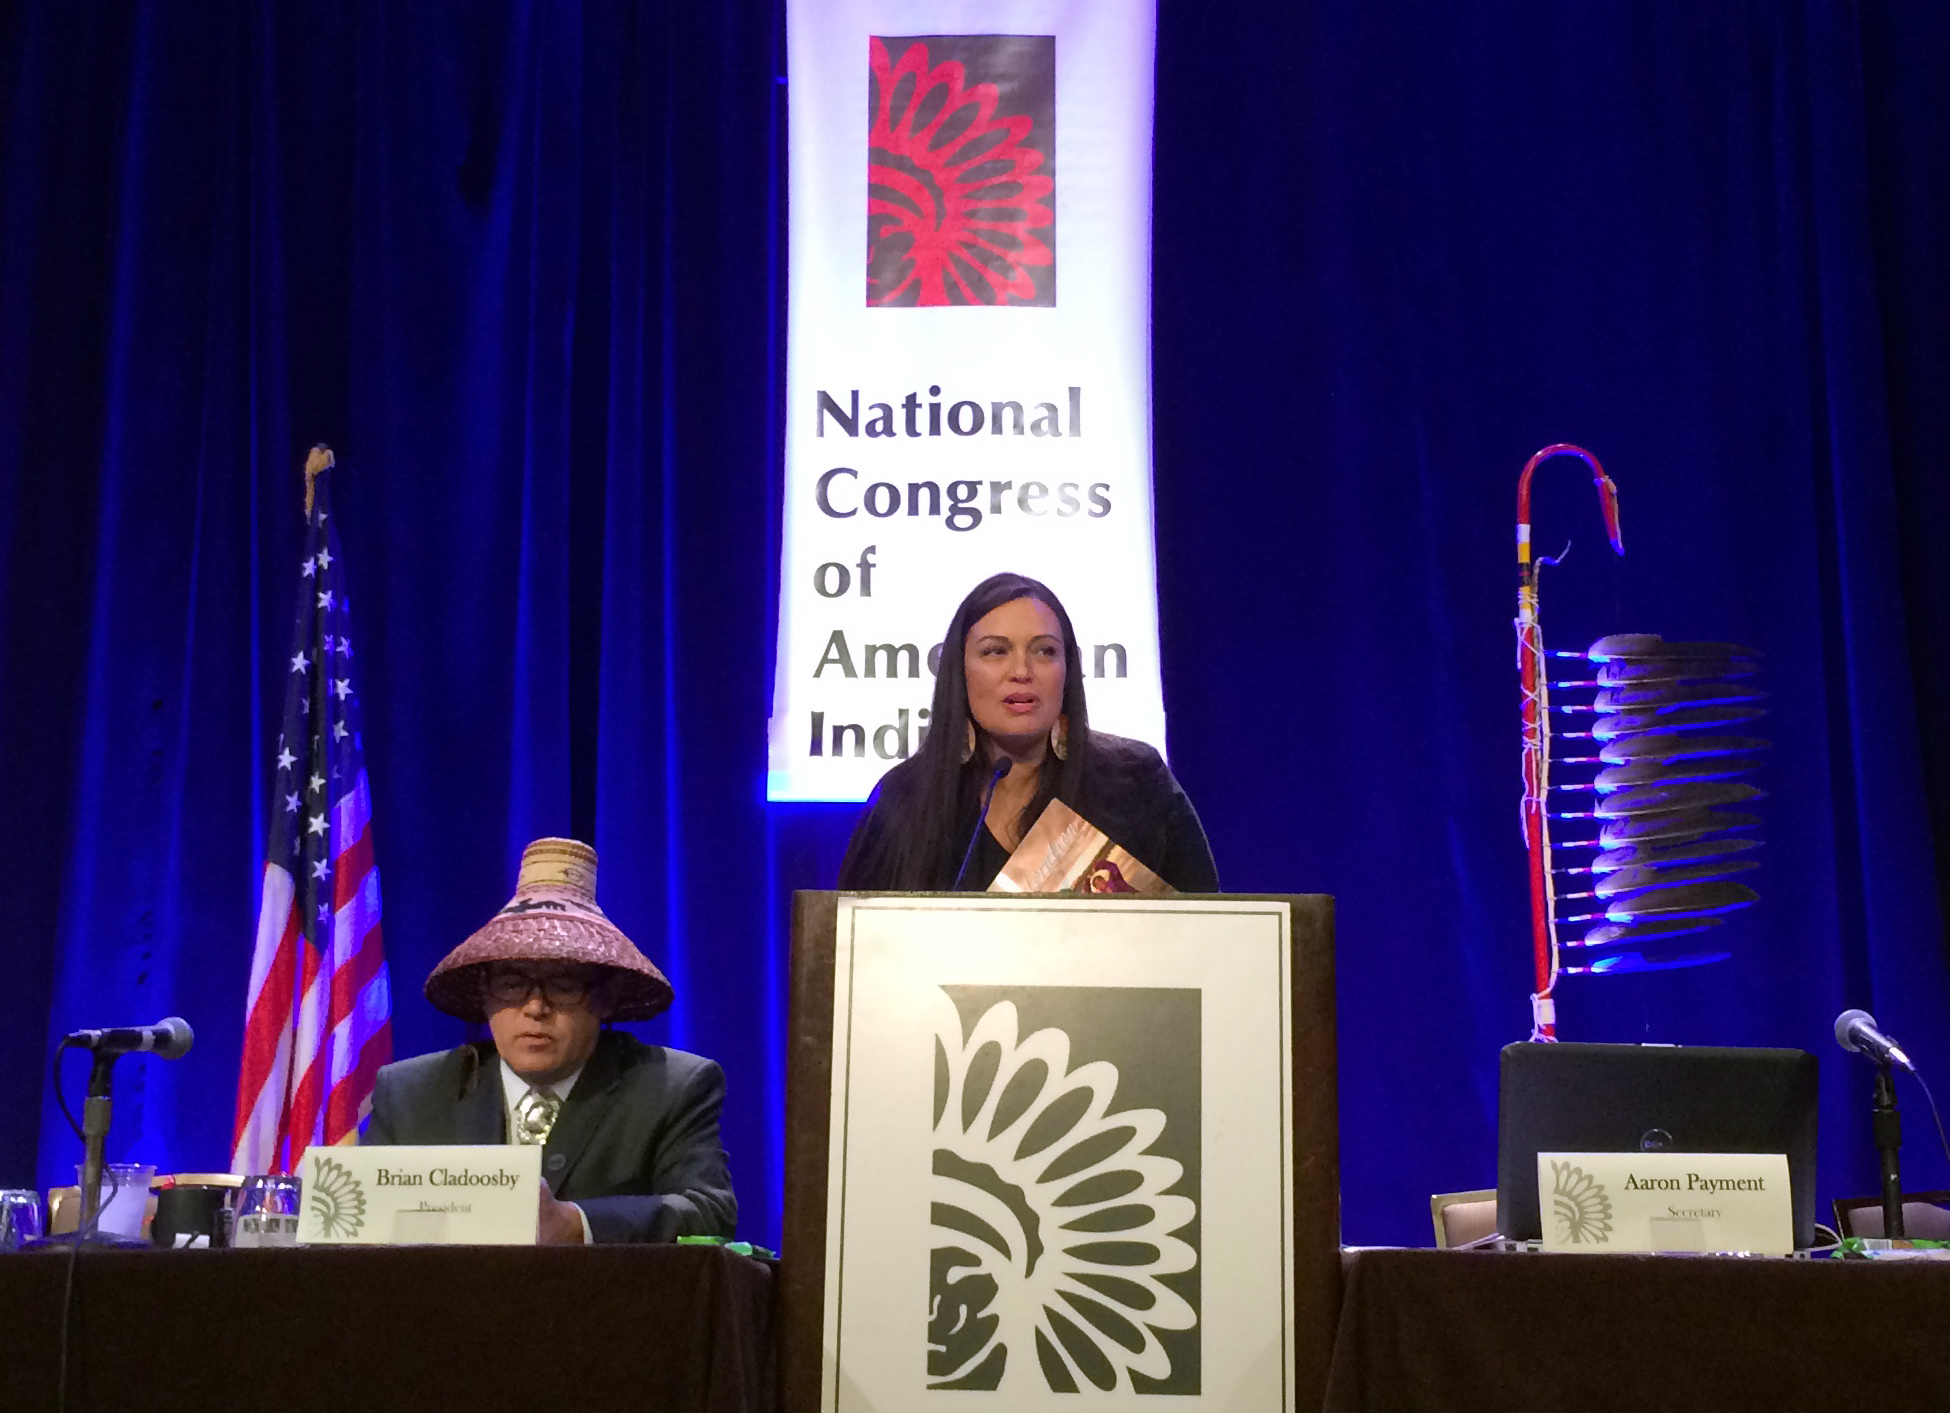 Mark Trahant: Tulalip citizen Deborah Parker lands role in crafting Democratic platform